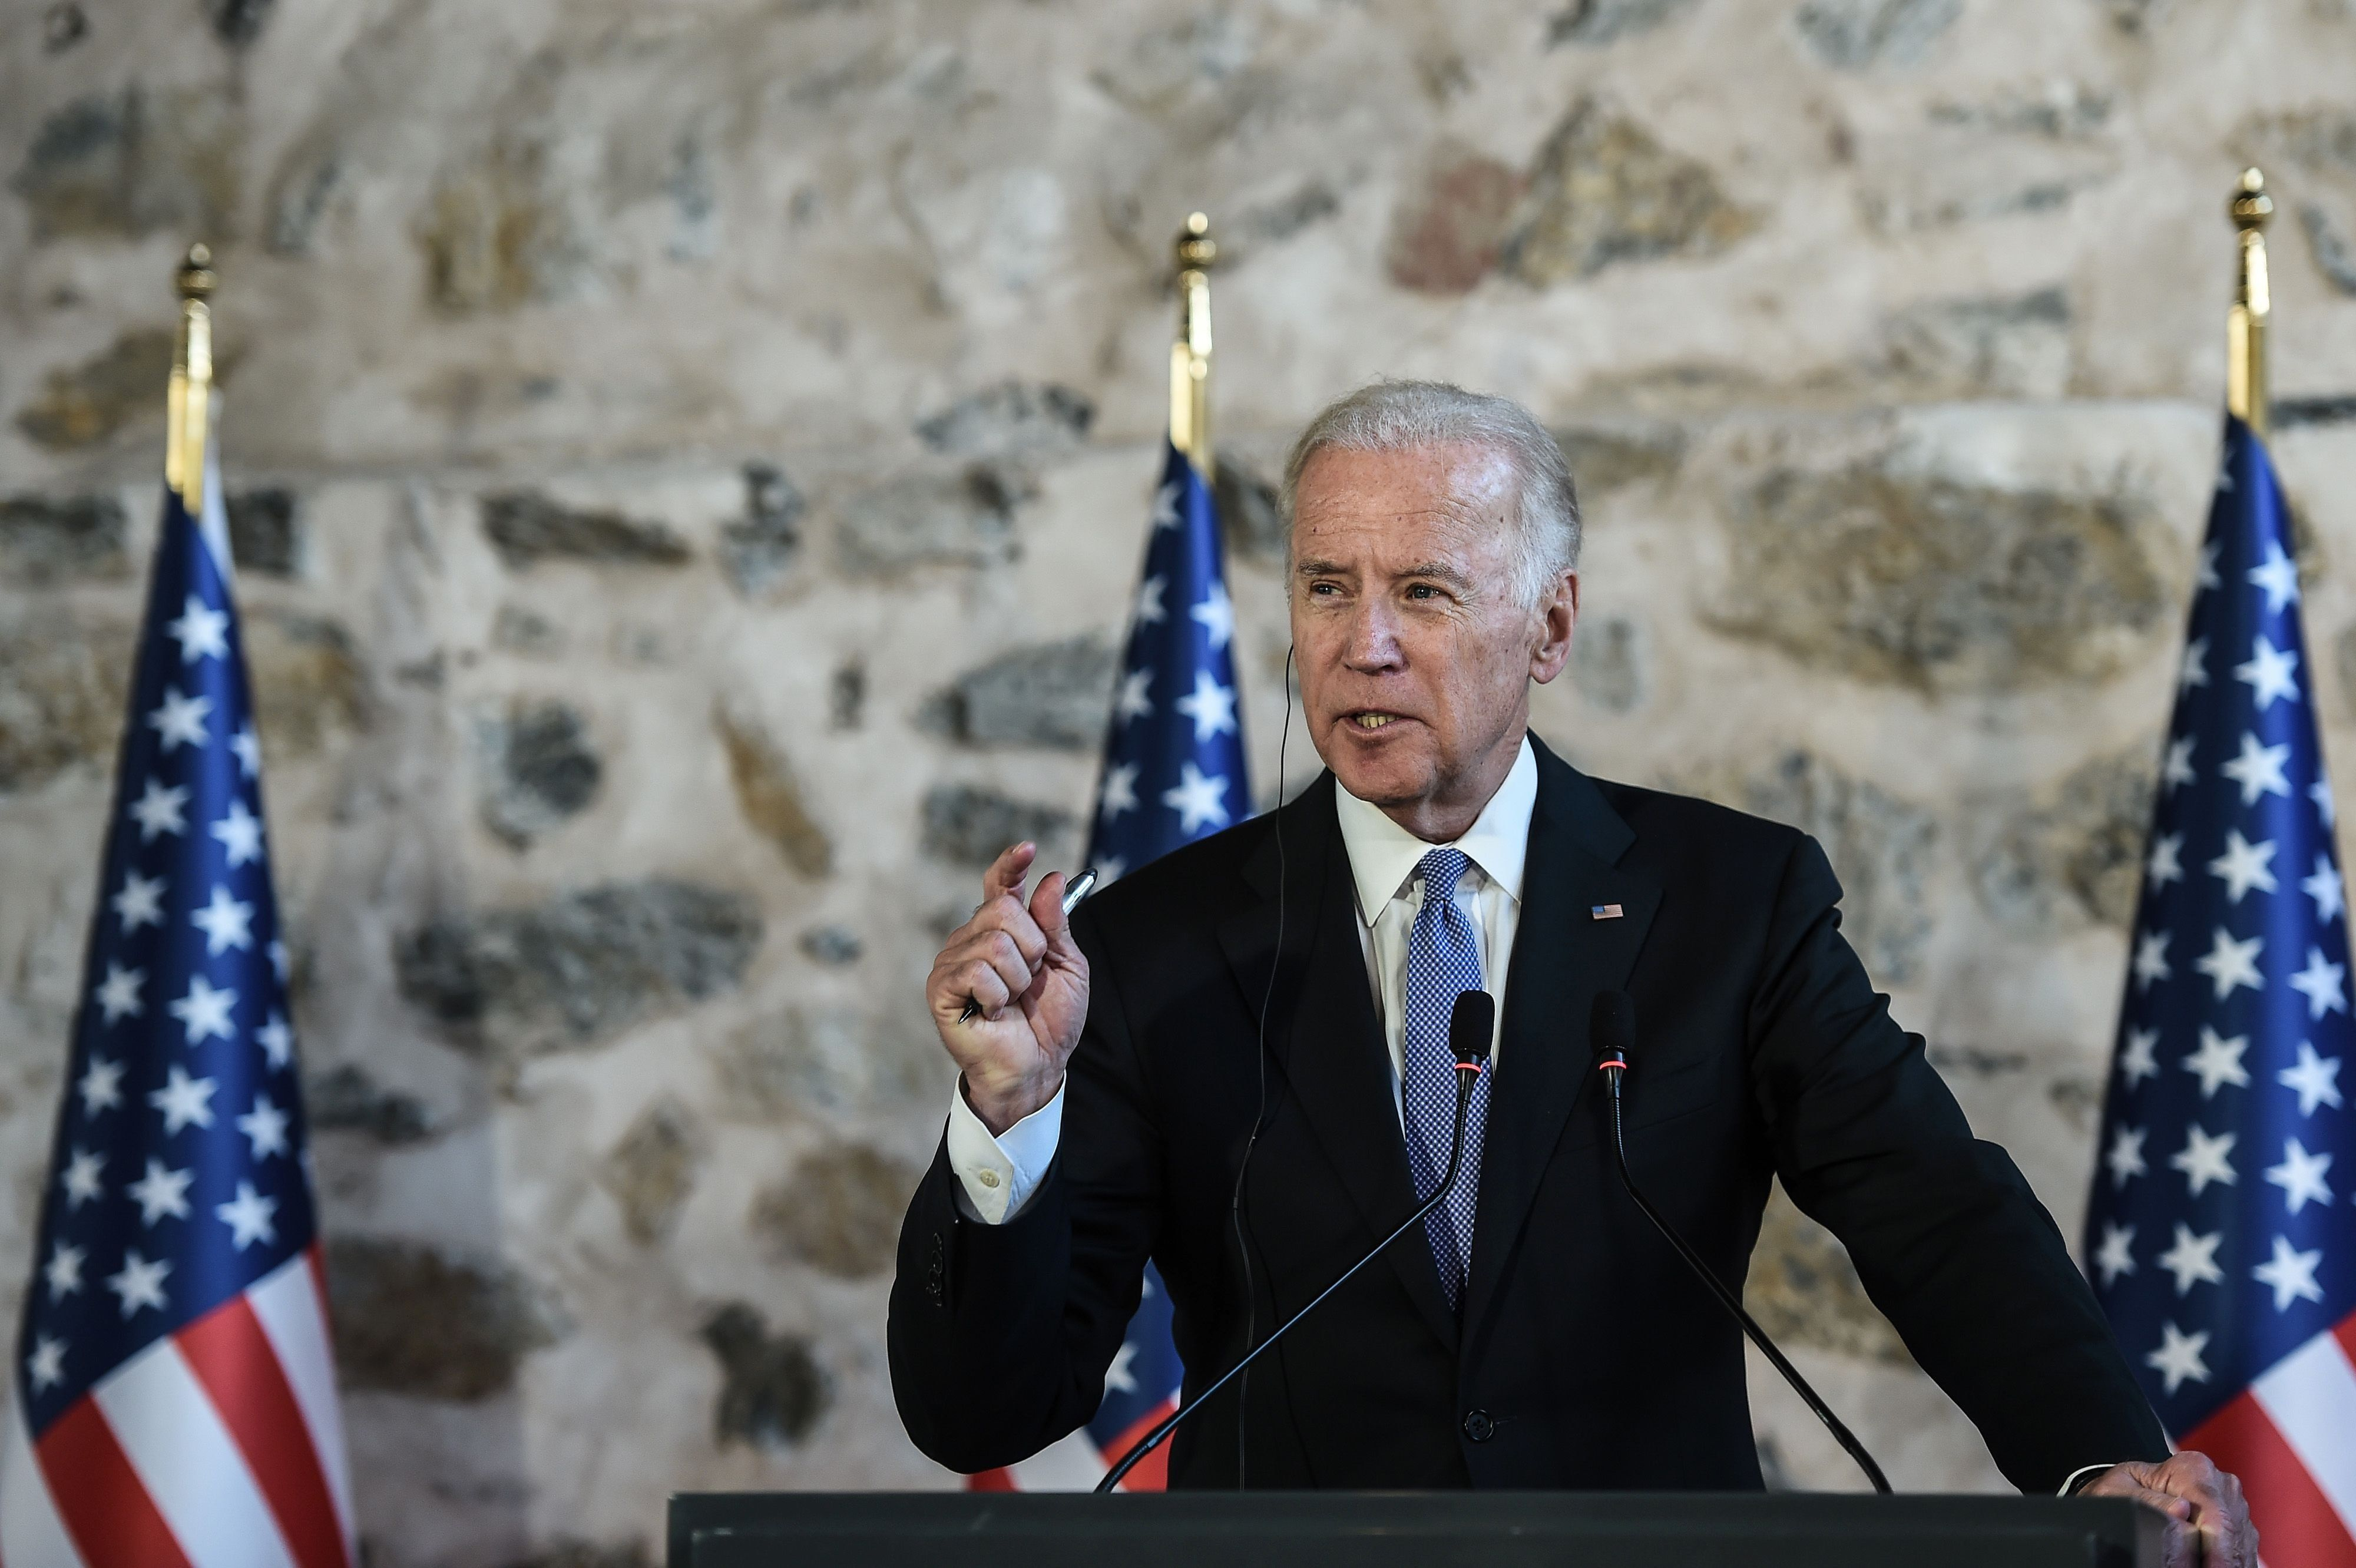 Vice President Joe Biden told House Democrats the administration was trying to deal with deportations in a humane way, accord